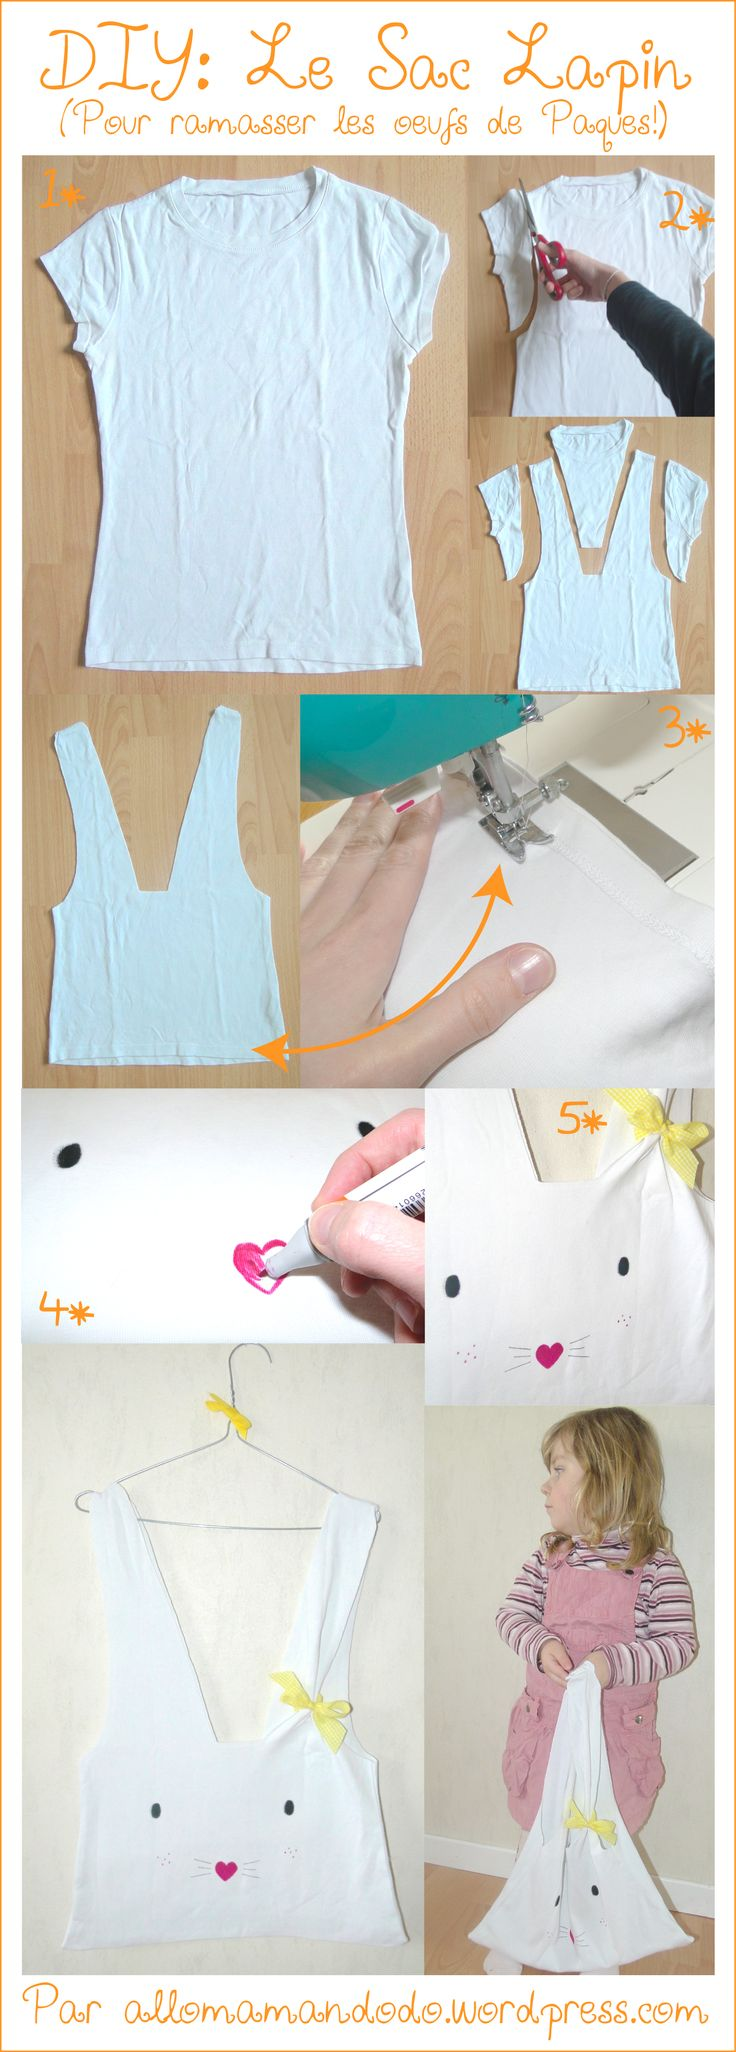 Fabuleux 25+ unique Bricolage facile ideas on Pinterest | Bricolage  OJ78